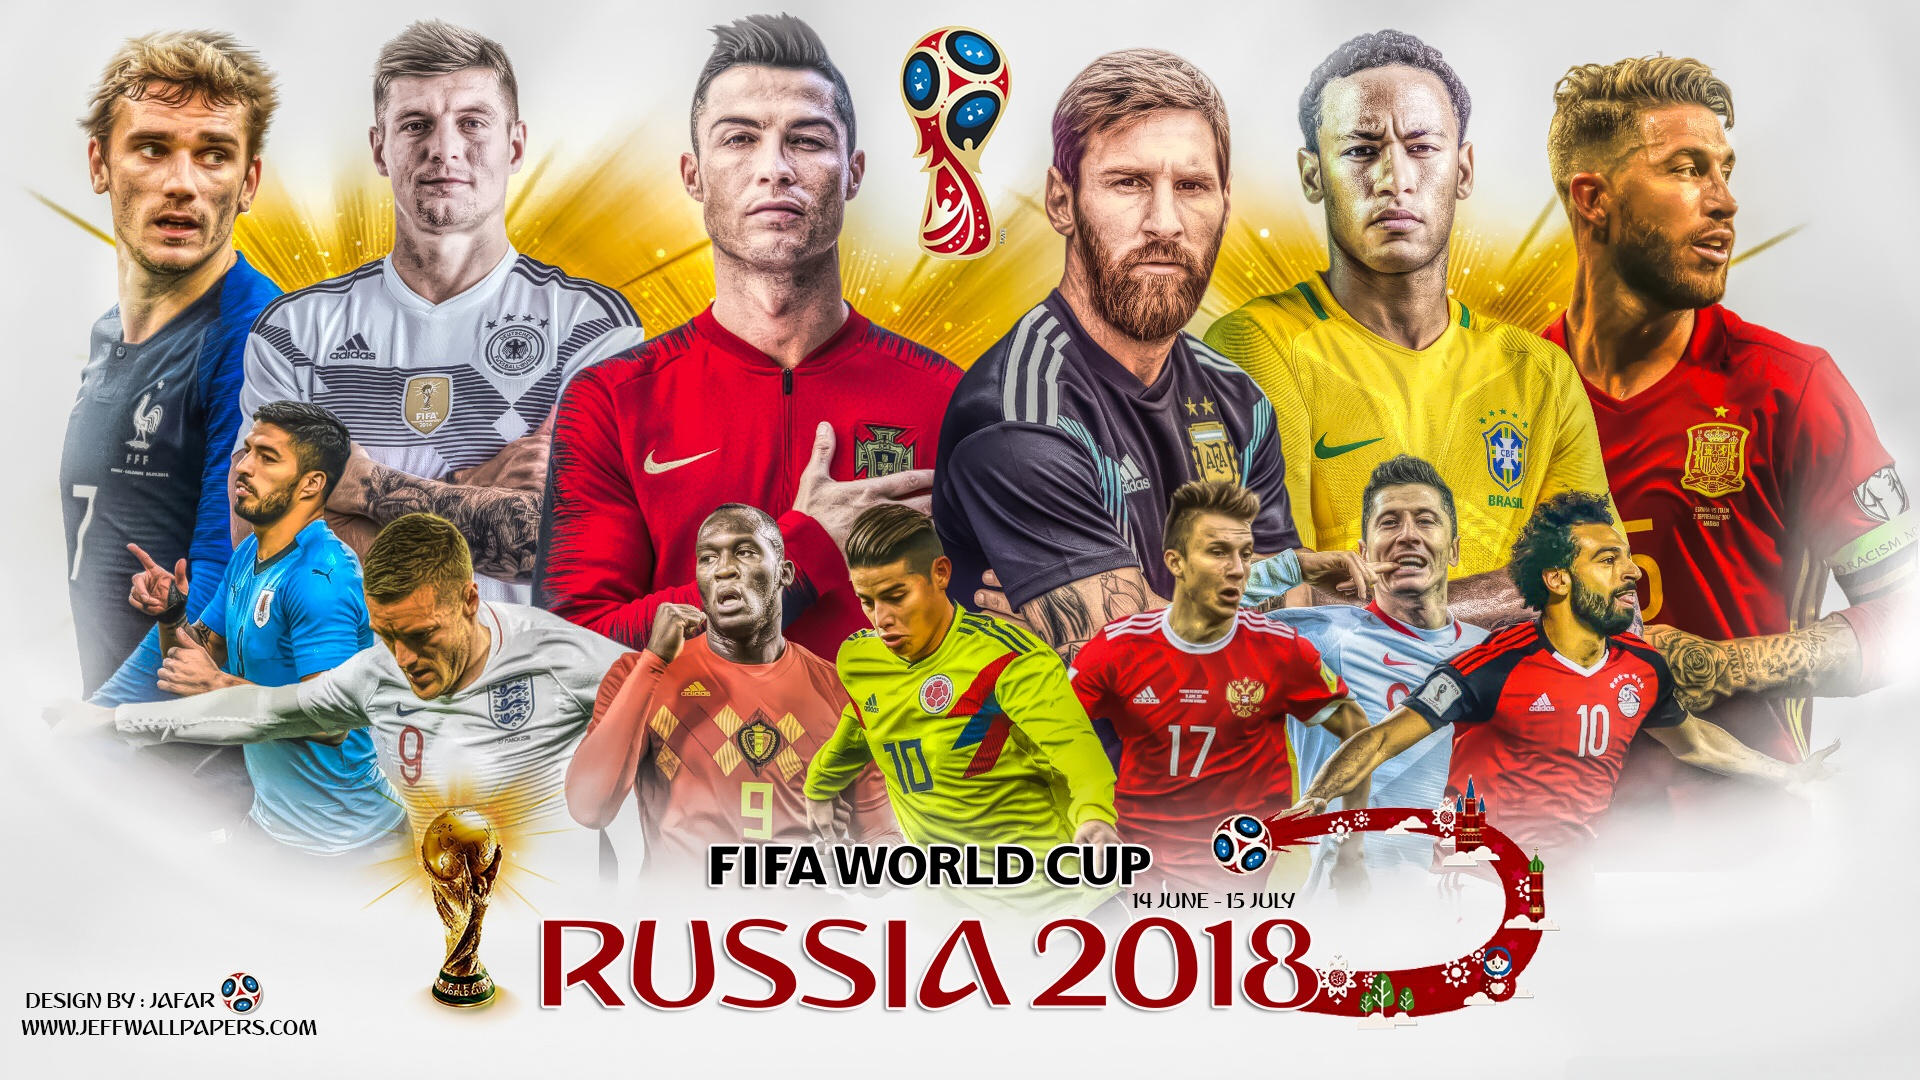 1920x1080 - FIFA World Cup 2018 Wallpapers 9